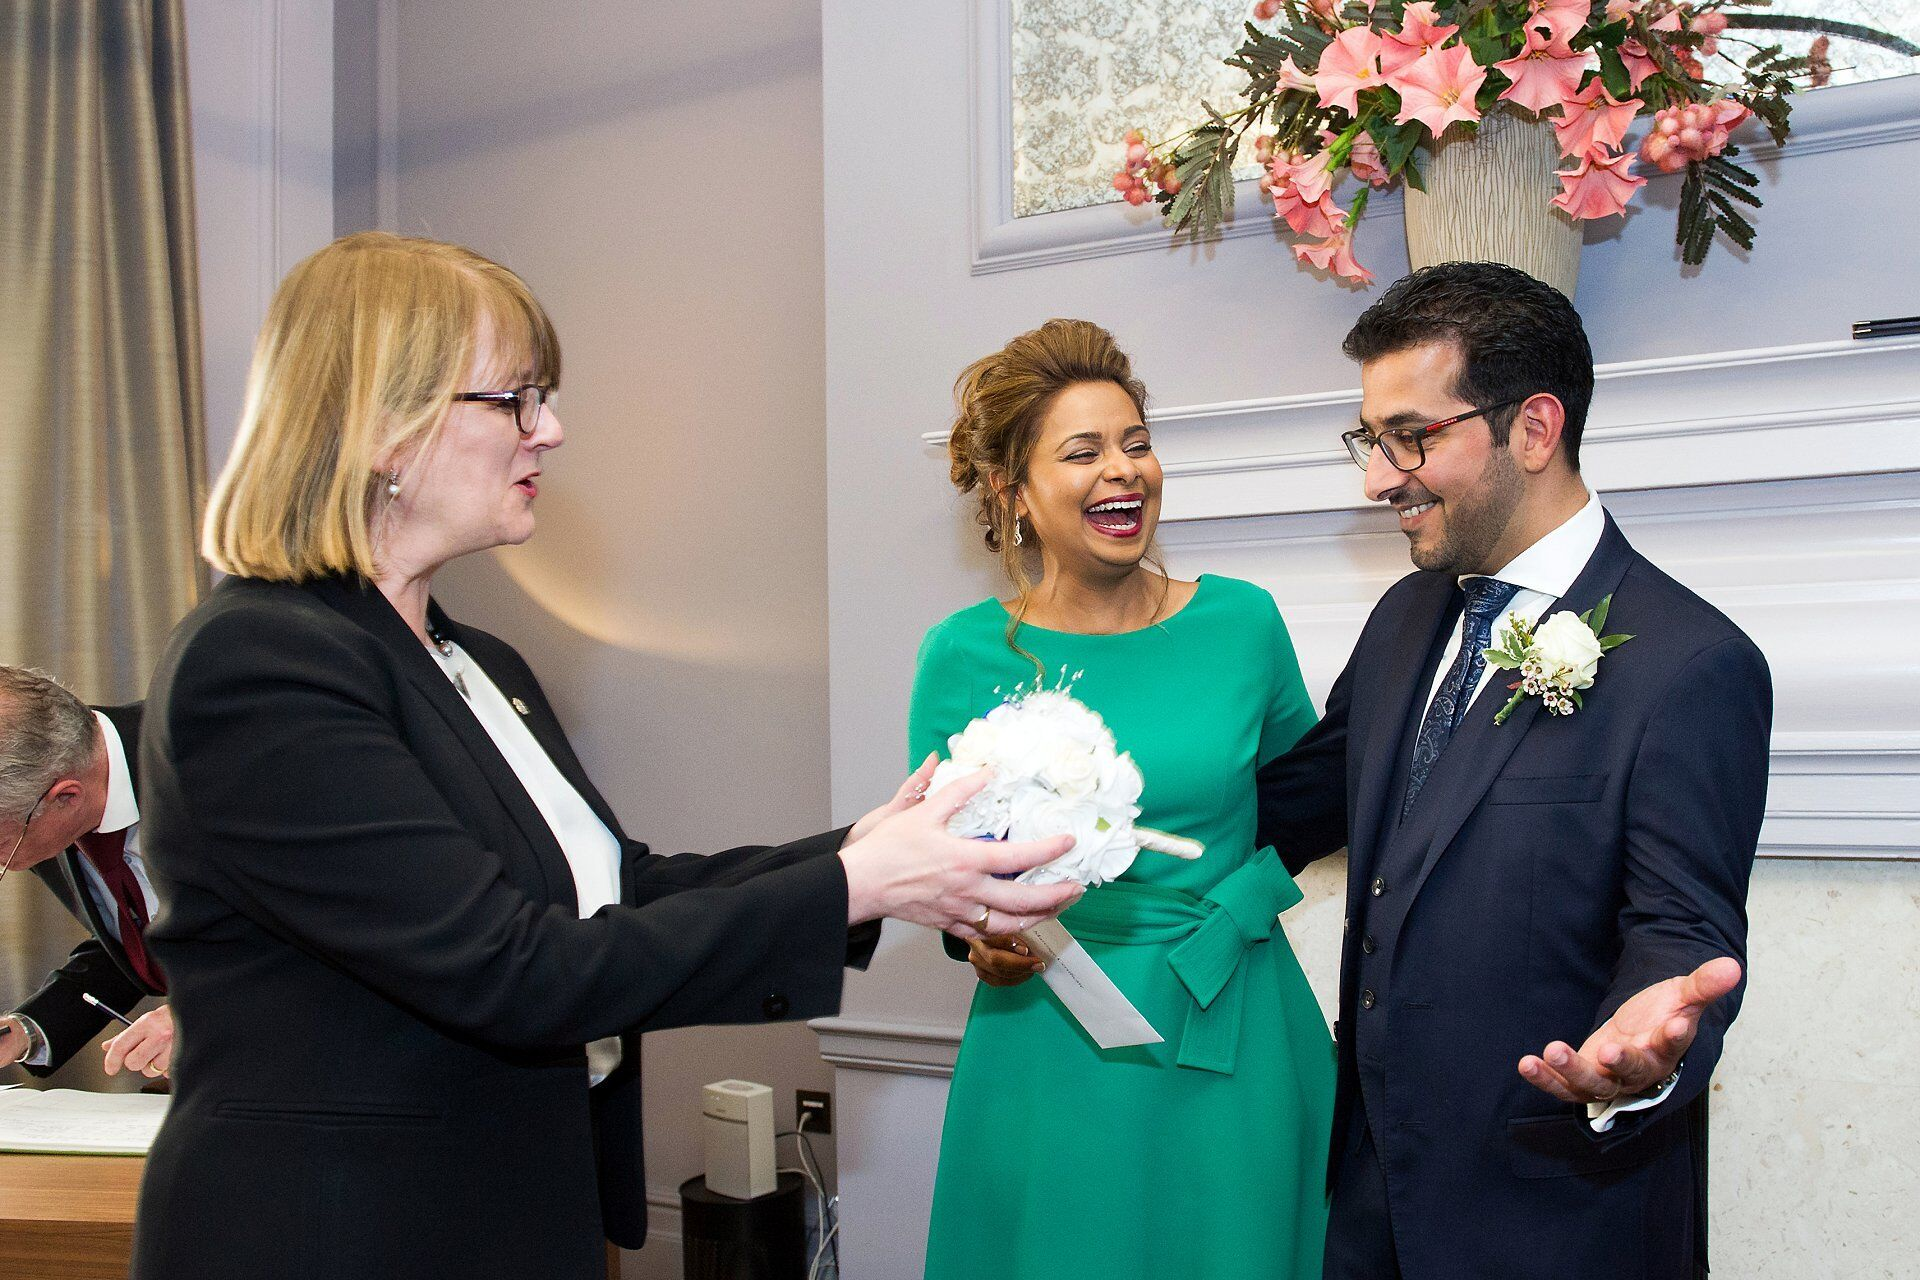 alison cathcart superintendent registrar westminster register offiice hands groom brides bouquet in knightsbridge room